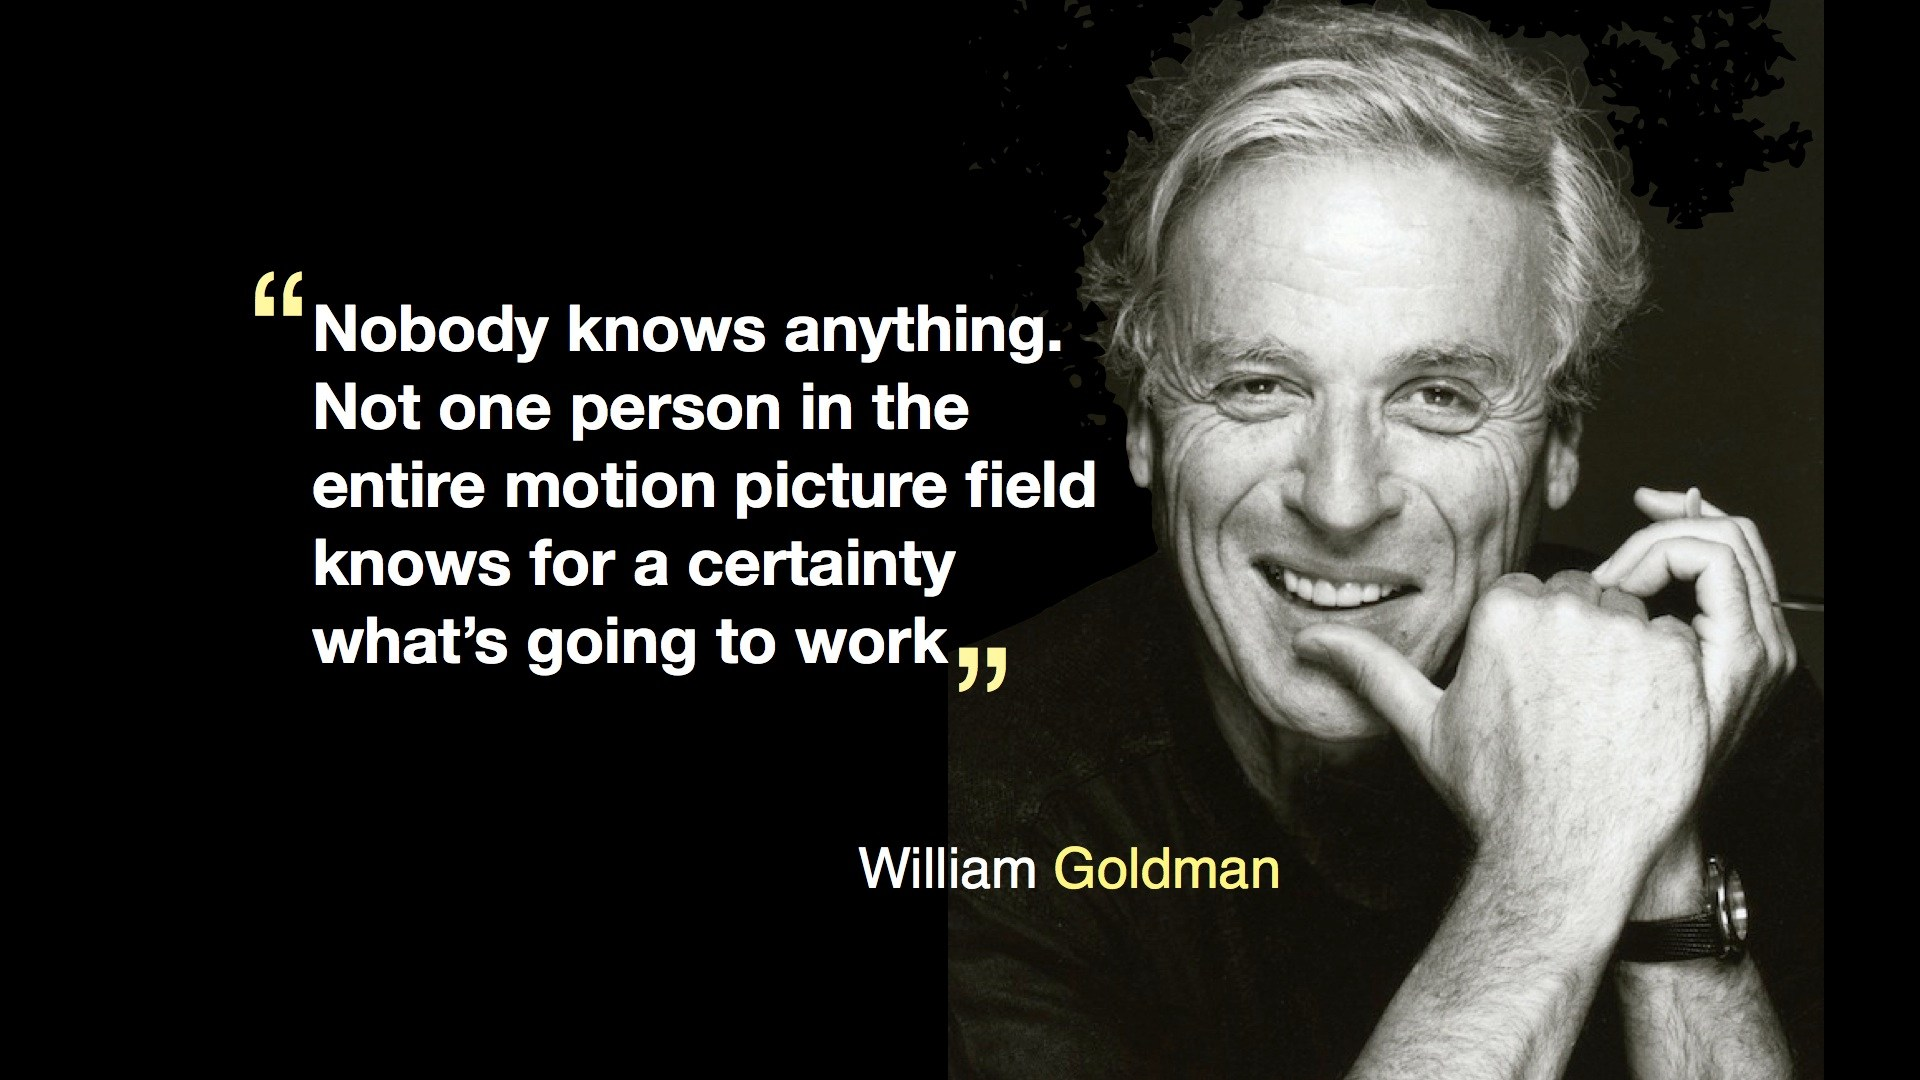 WilliamGoldman NobodyKnows